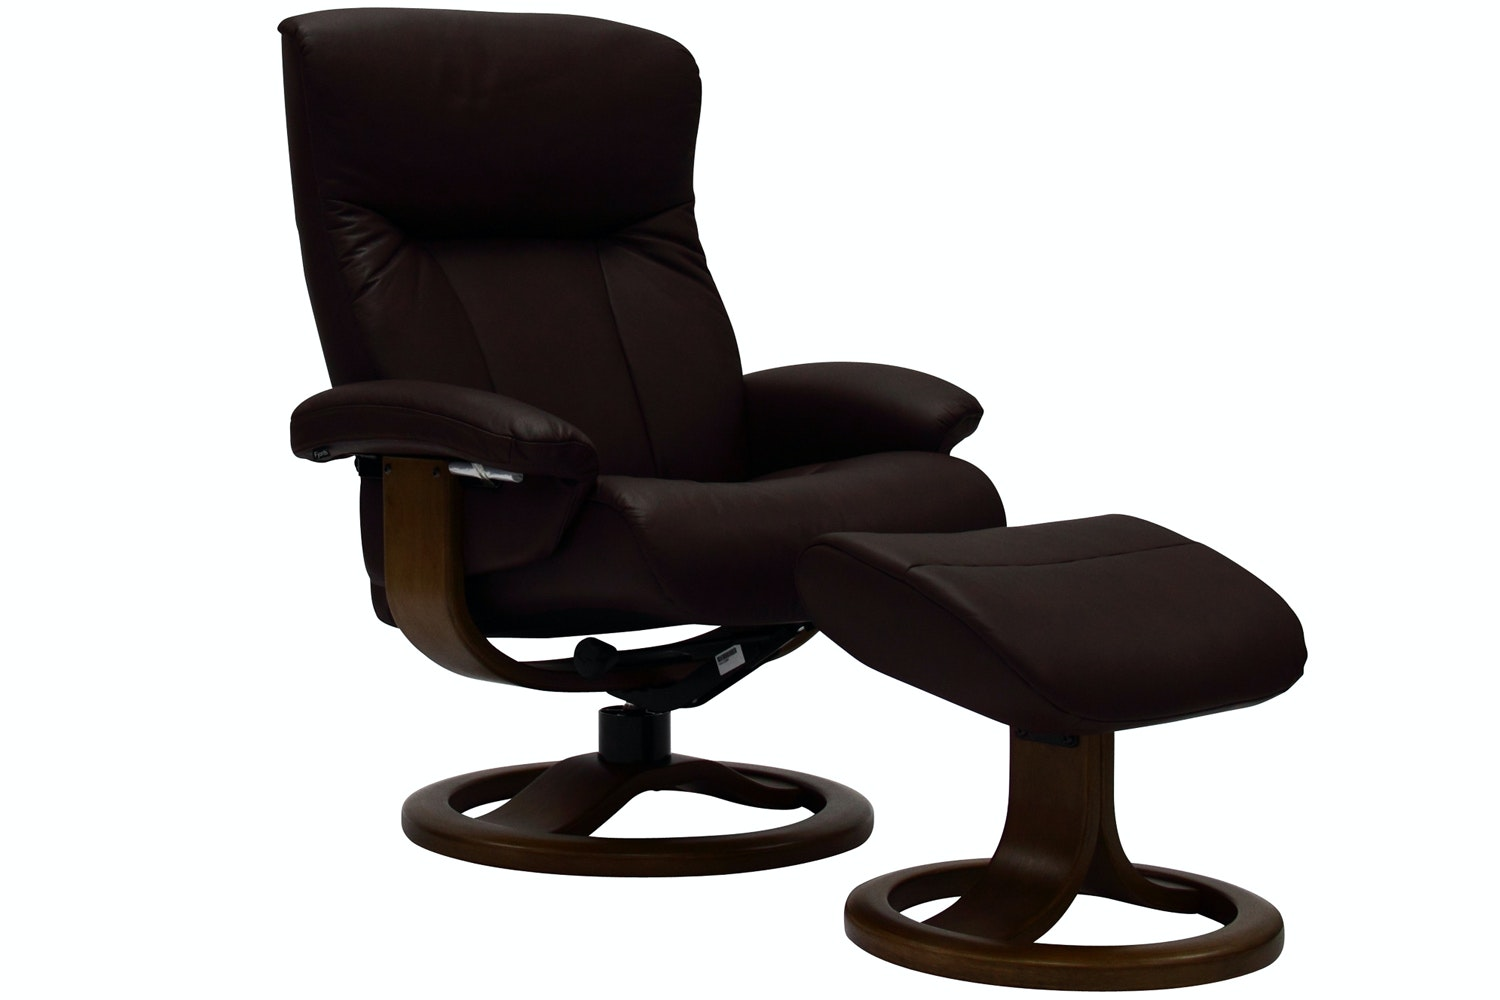 Rhine Chair with Stool | Brown Leather with Espresso Base